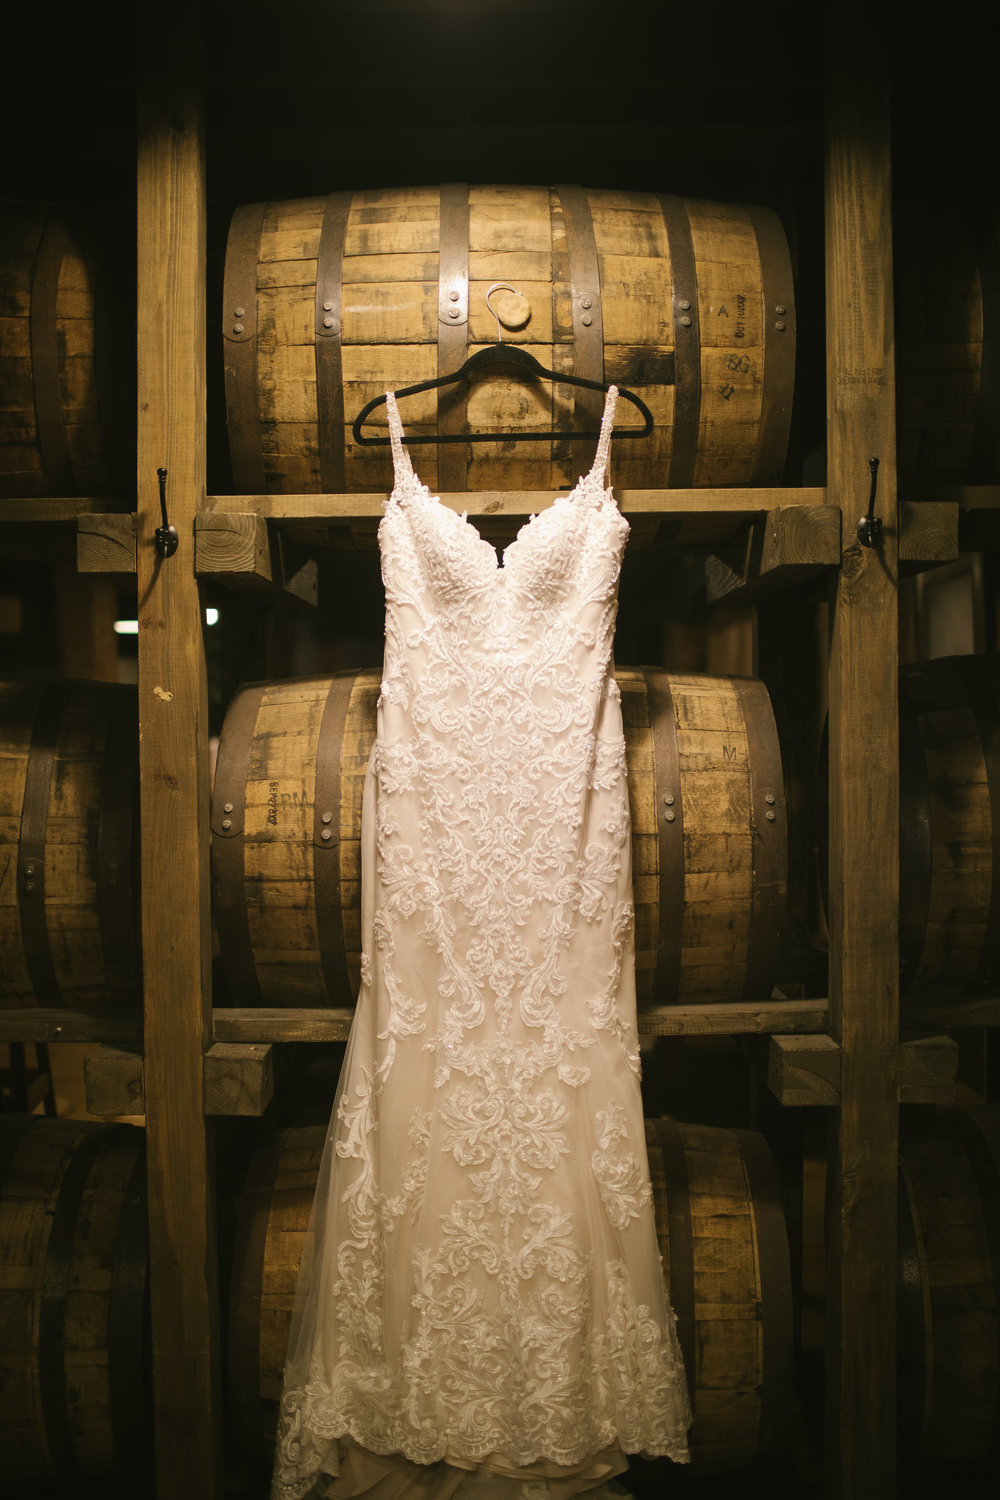 Bride's lace wedding dress for rustic wedding in Pittsburgh, PA planned by Exhale Events. Find more wedding inspiration at exhale-events.com!